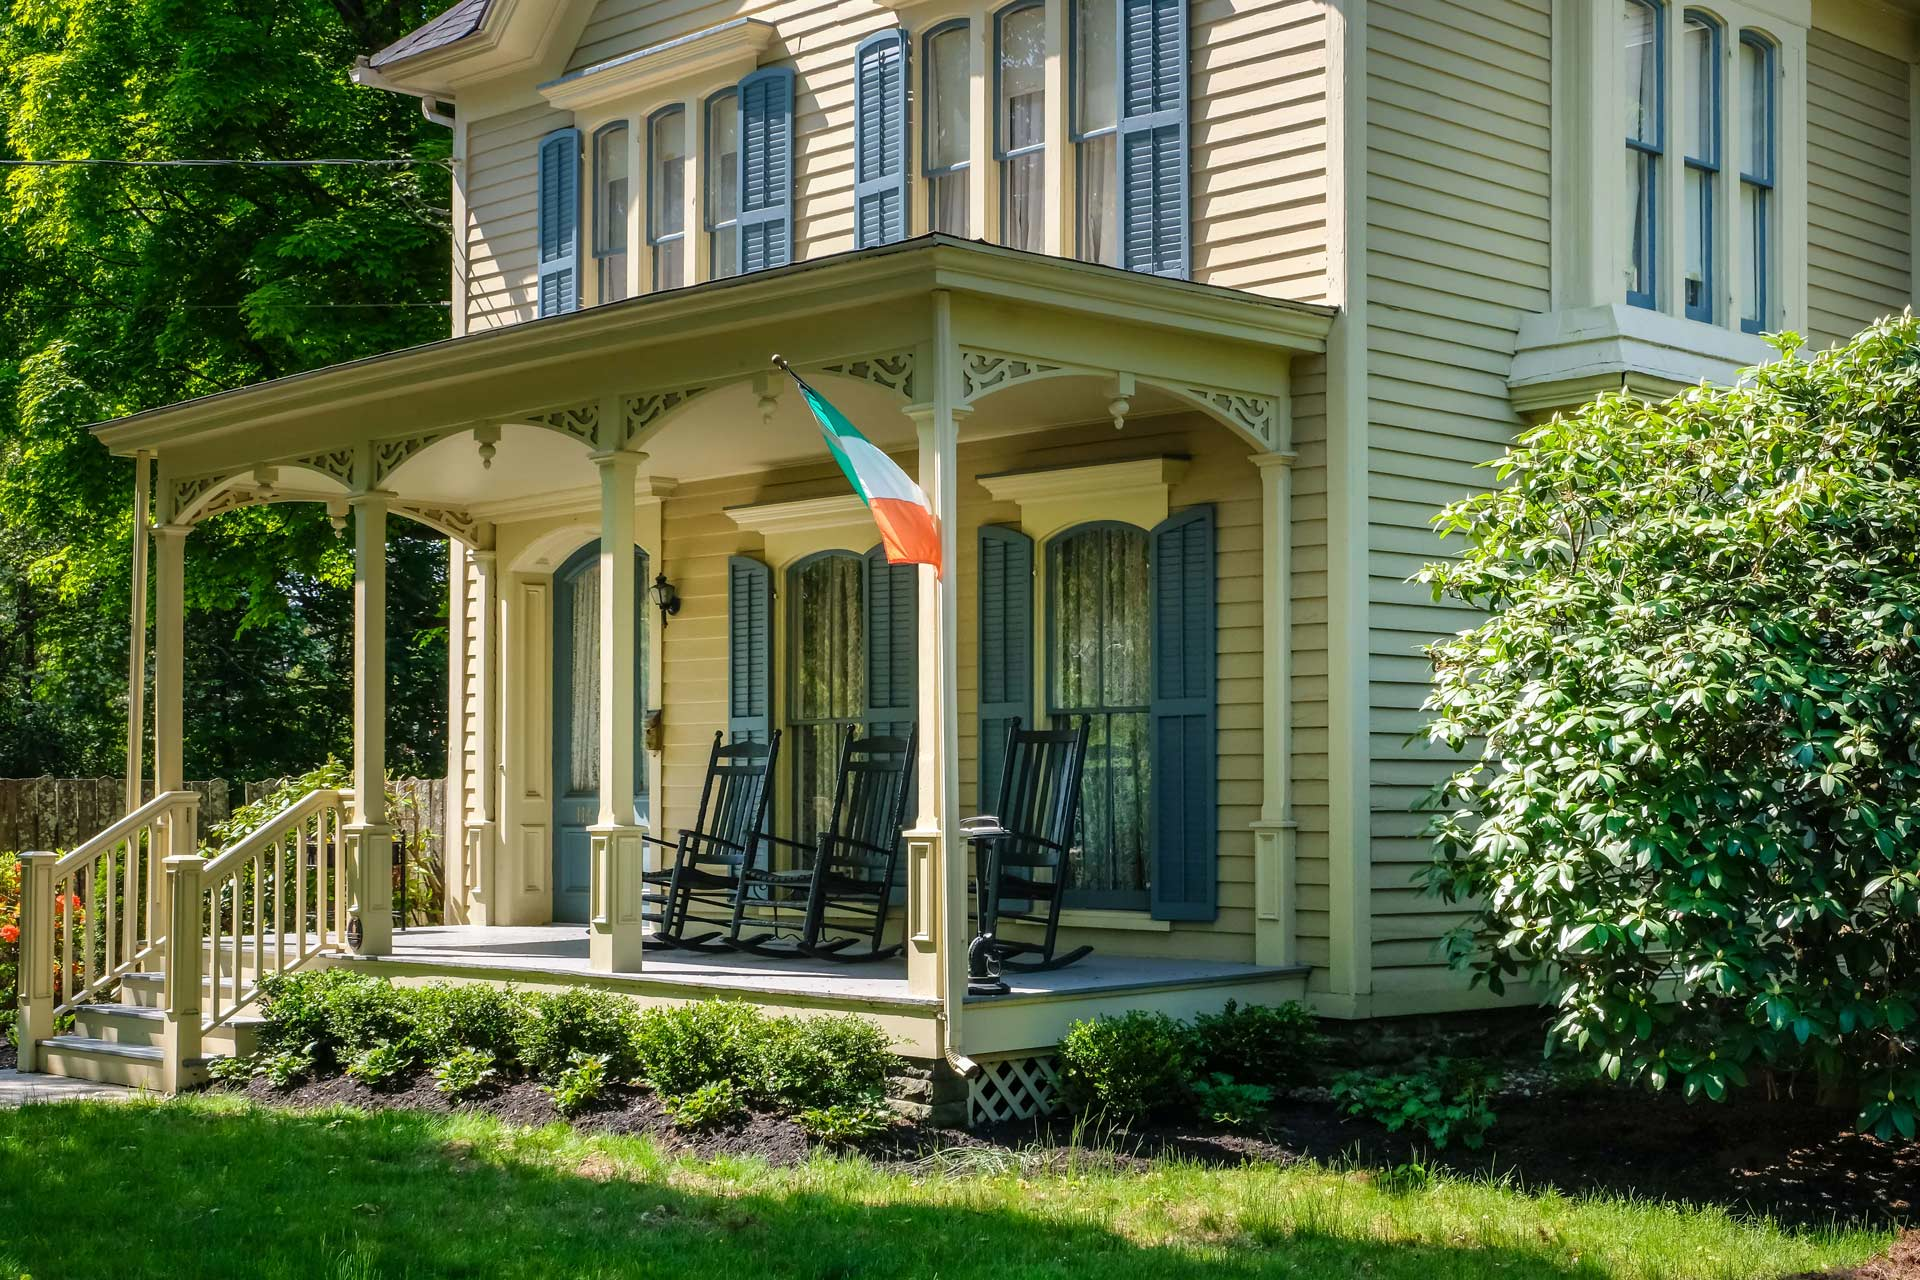 tan house with front porch and rocking chairs and irish flag